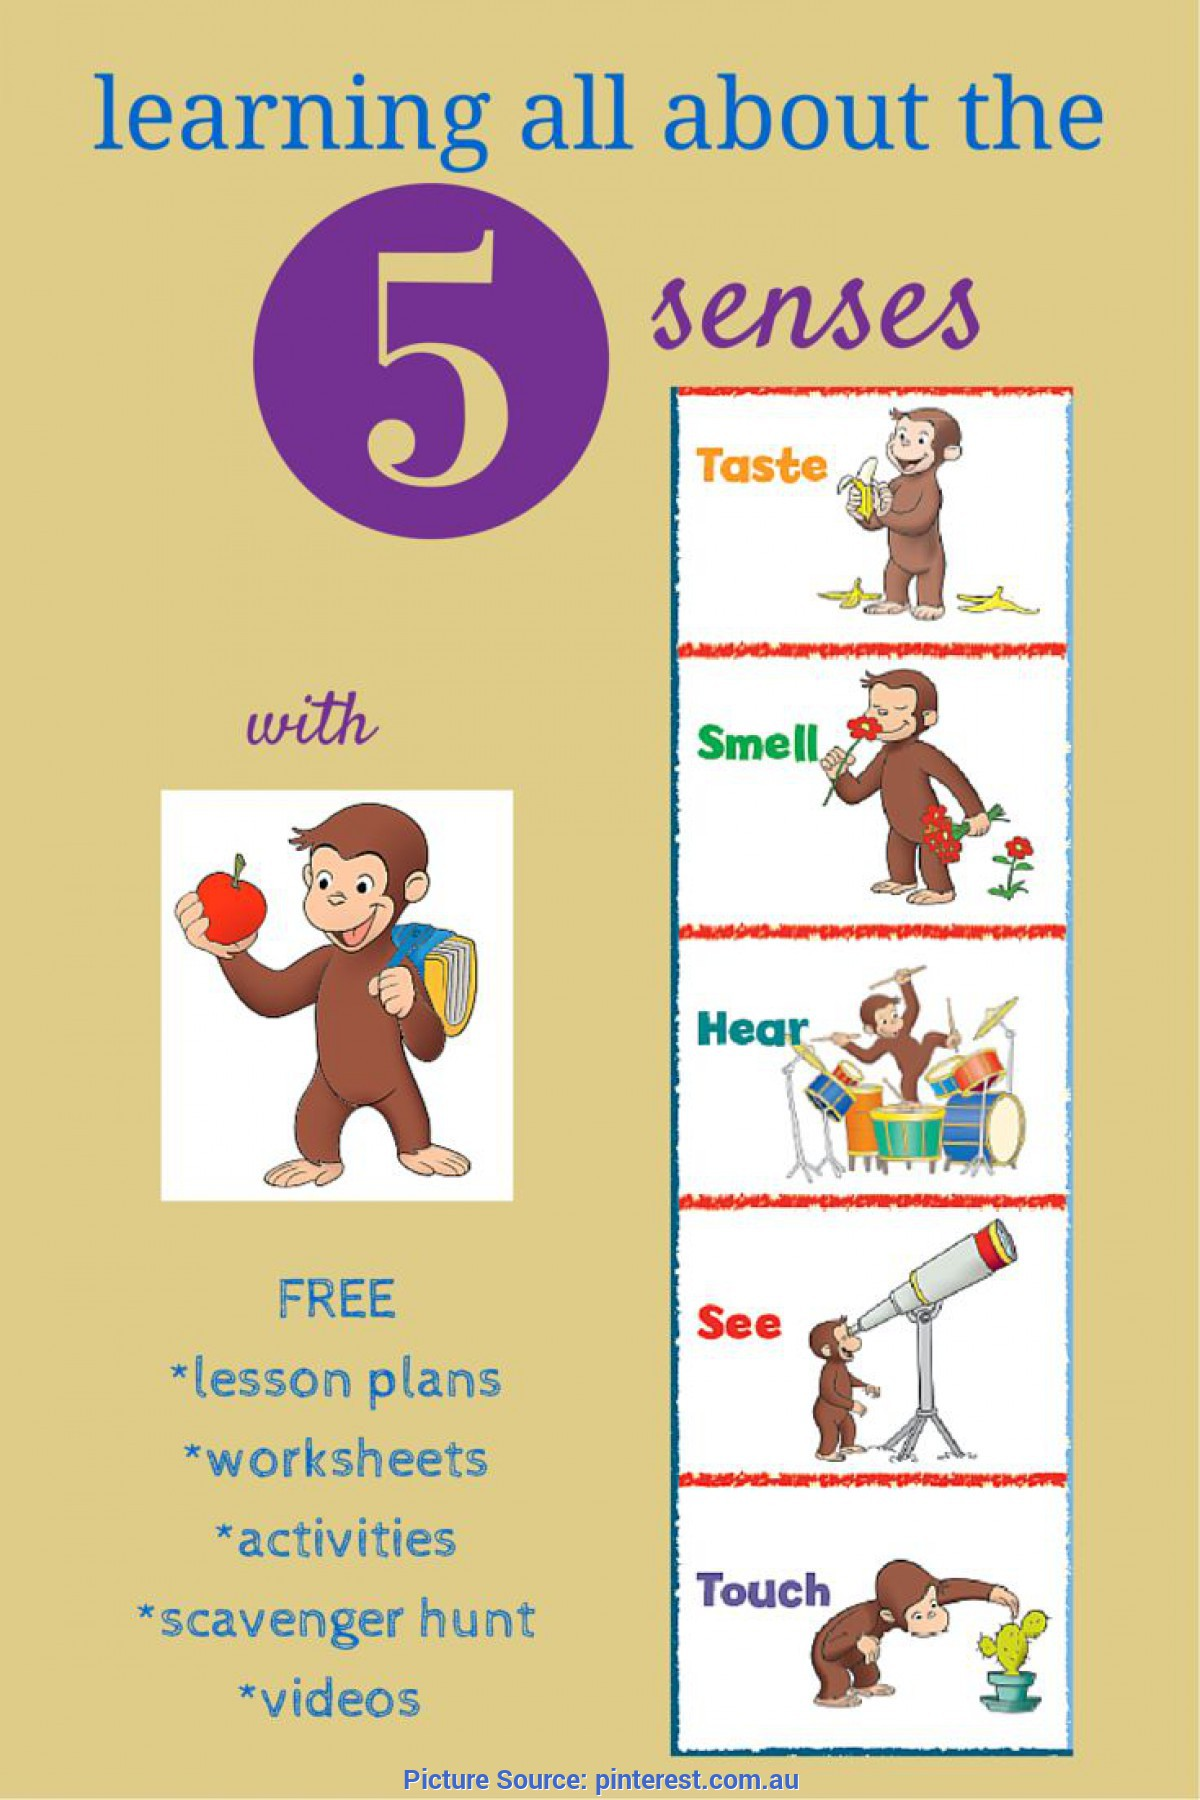 Typical Pre K Lesson Plans About Five Senses Resources To Teach Kids About The 5 Senses + Sensory Issue